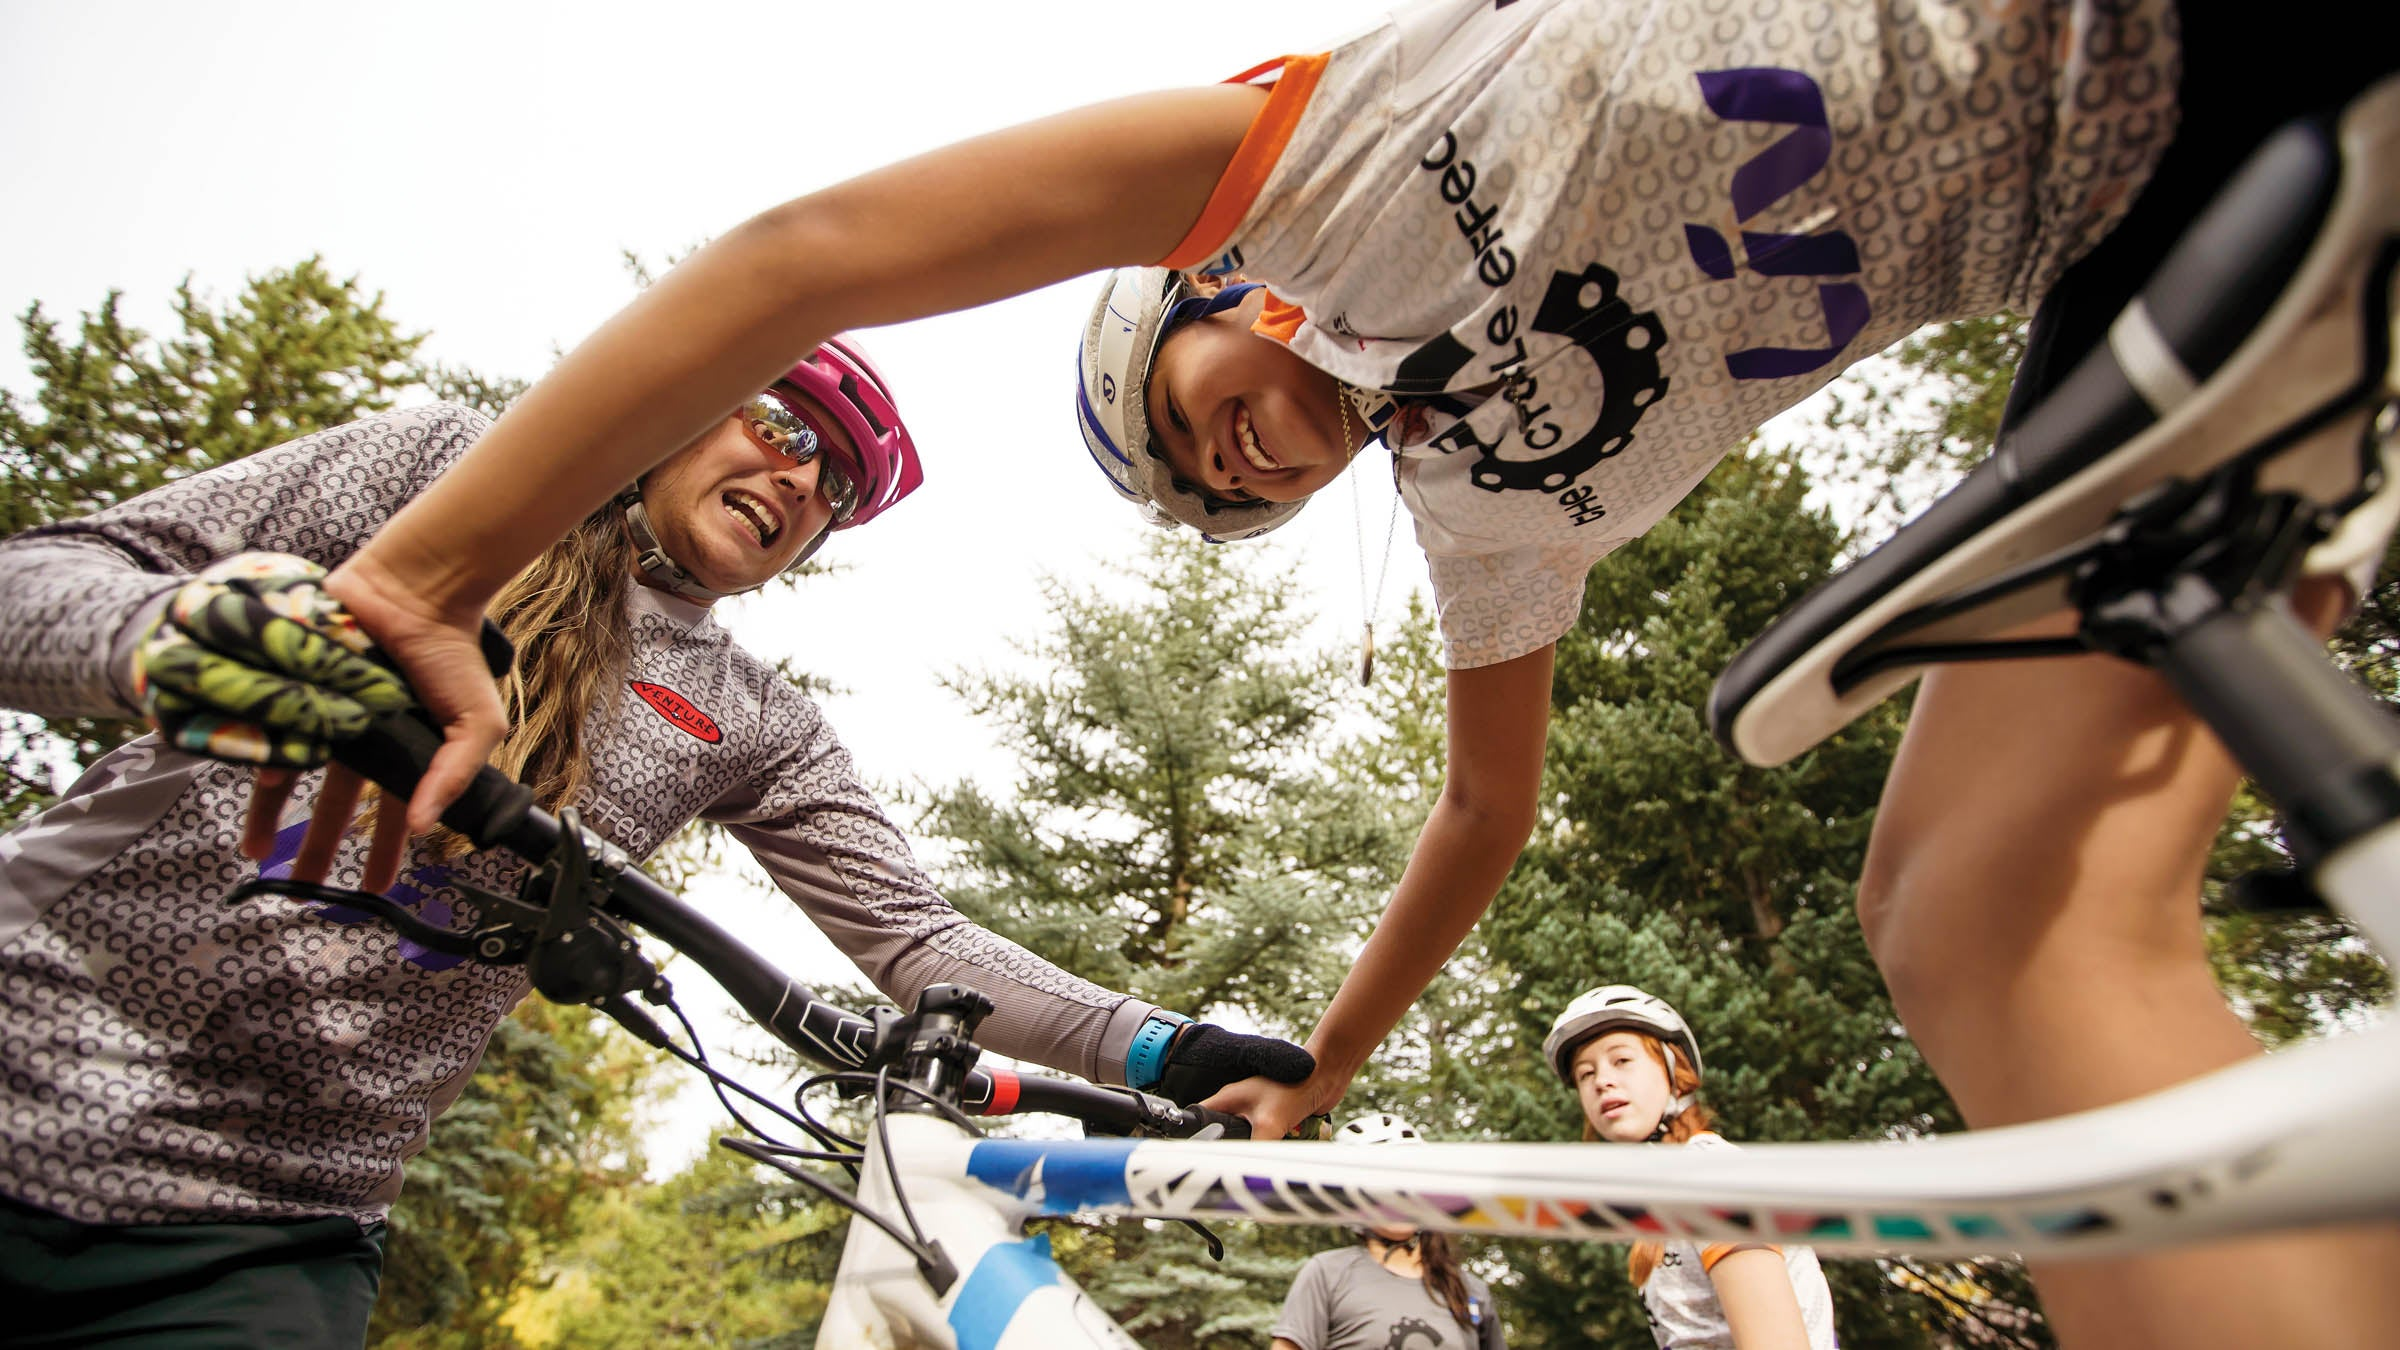 A woman grabs the handlebars of one of the girls' bikes